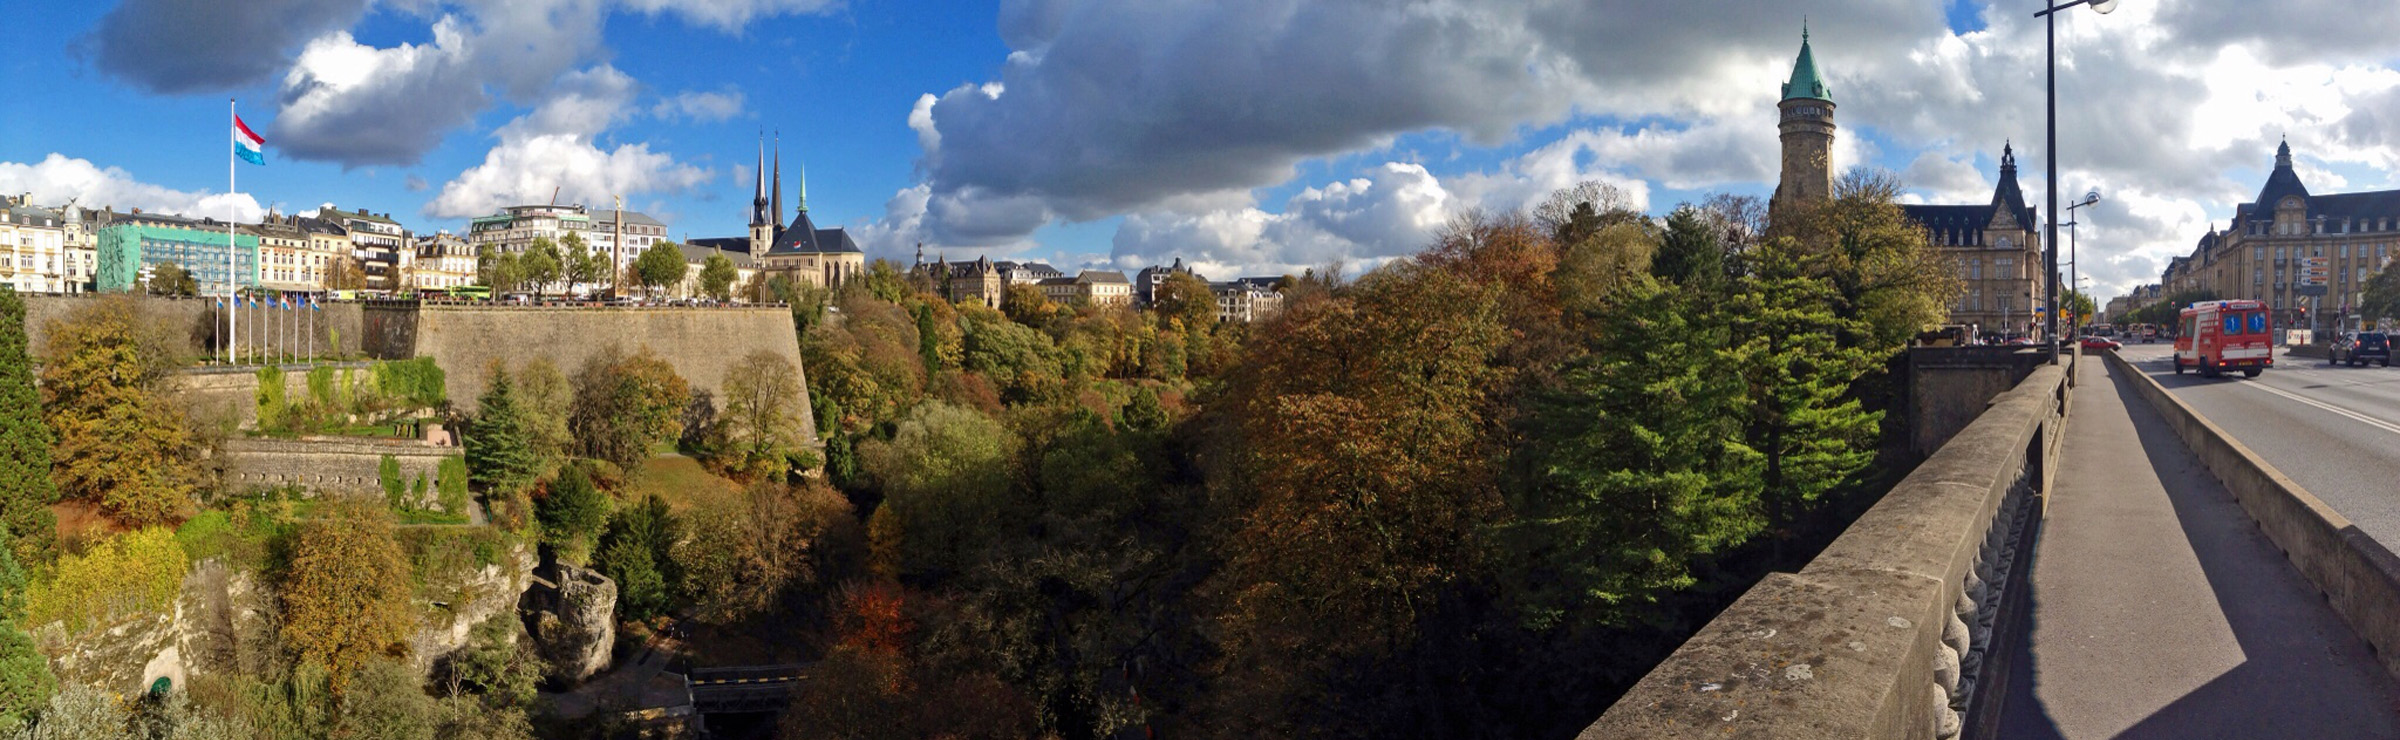 Luxembourg City, Luxembourg - by dr. zaro